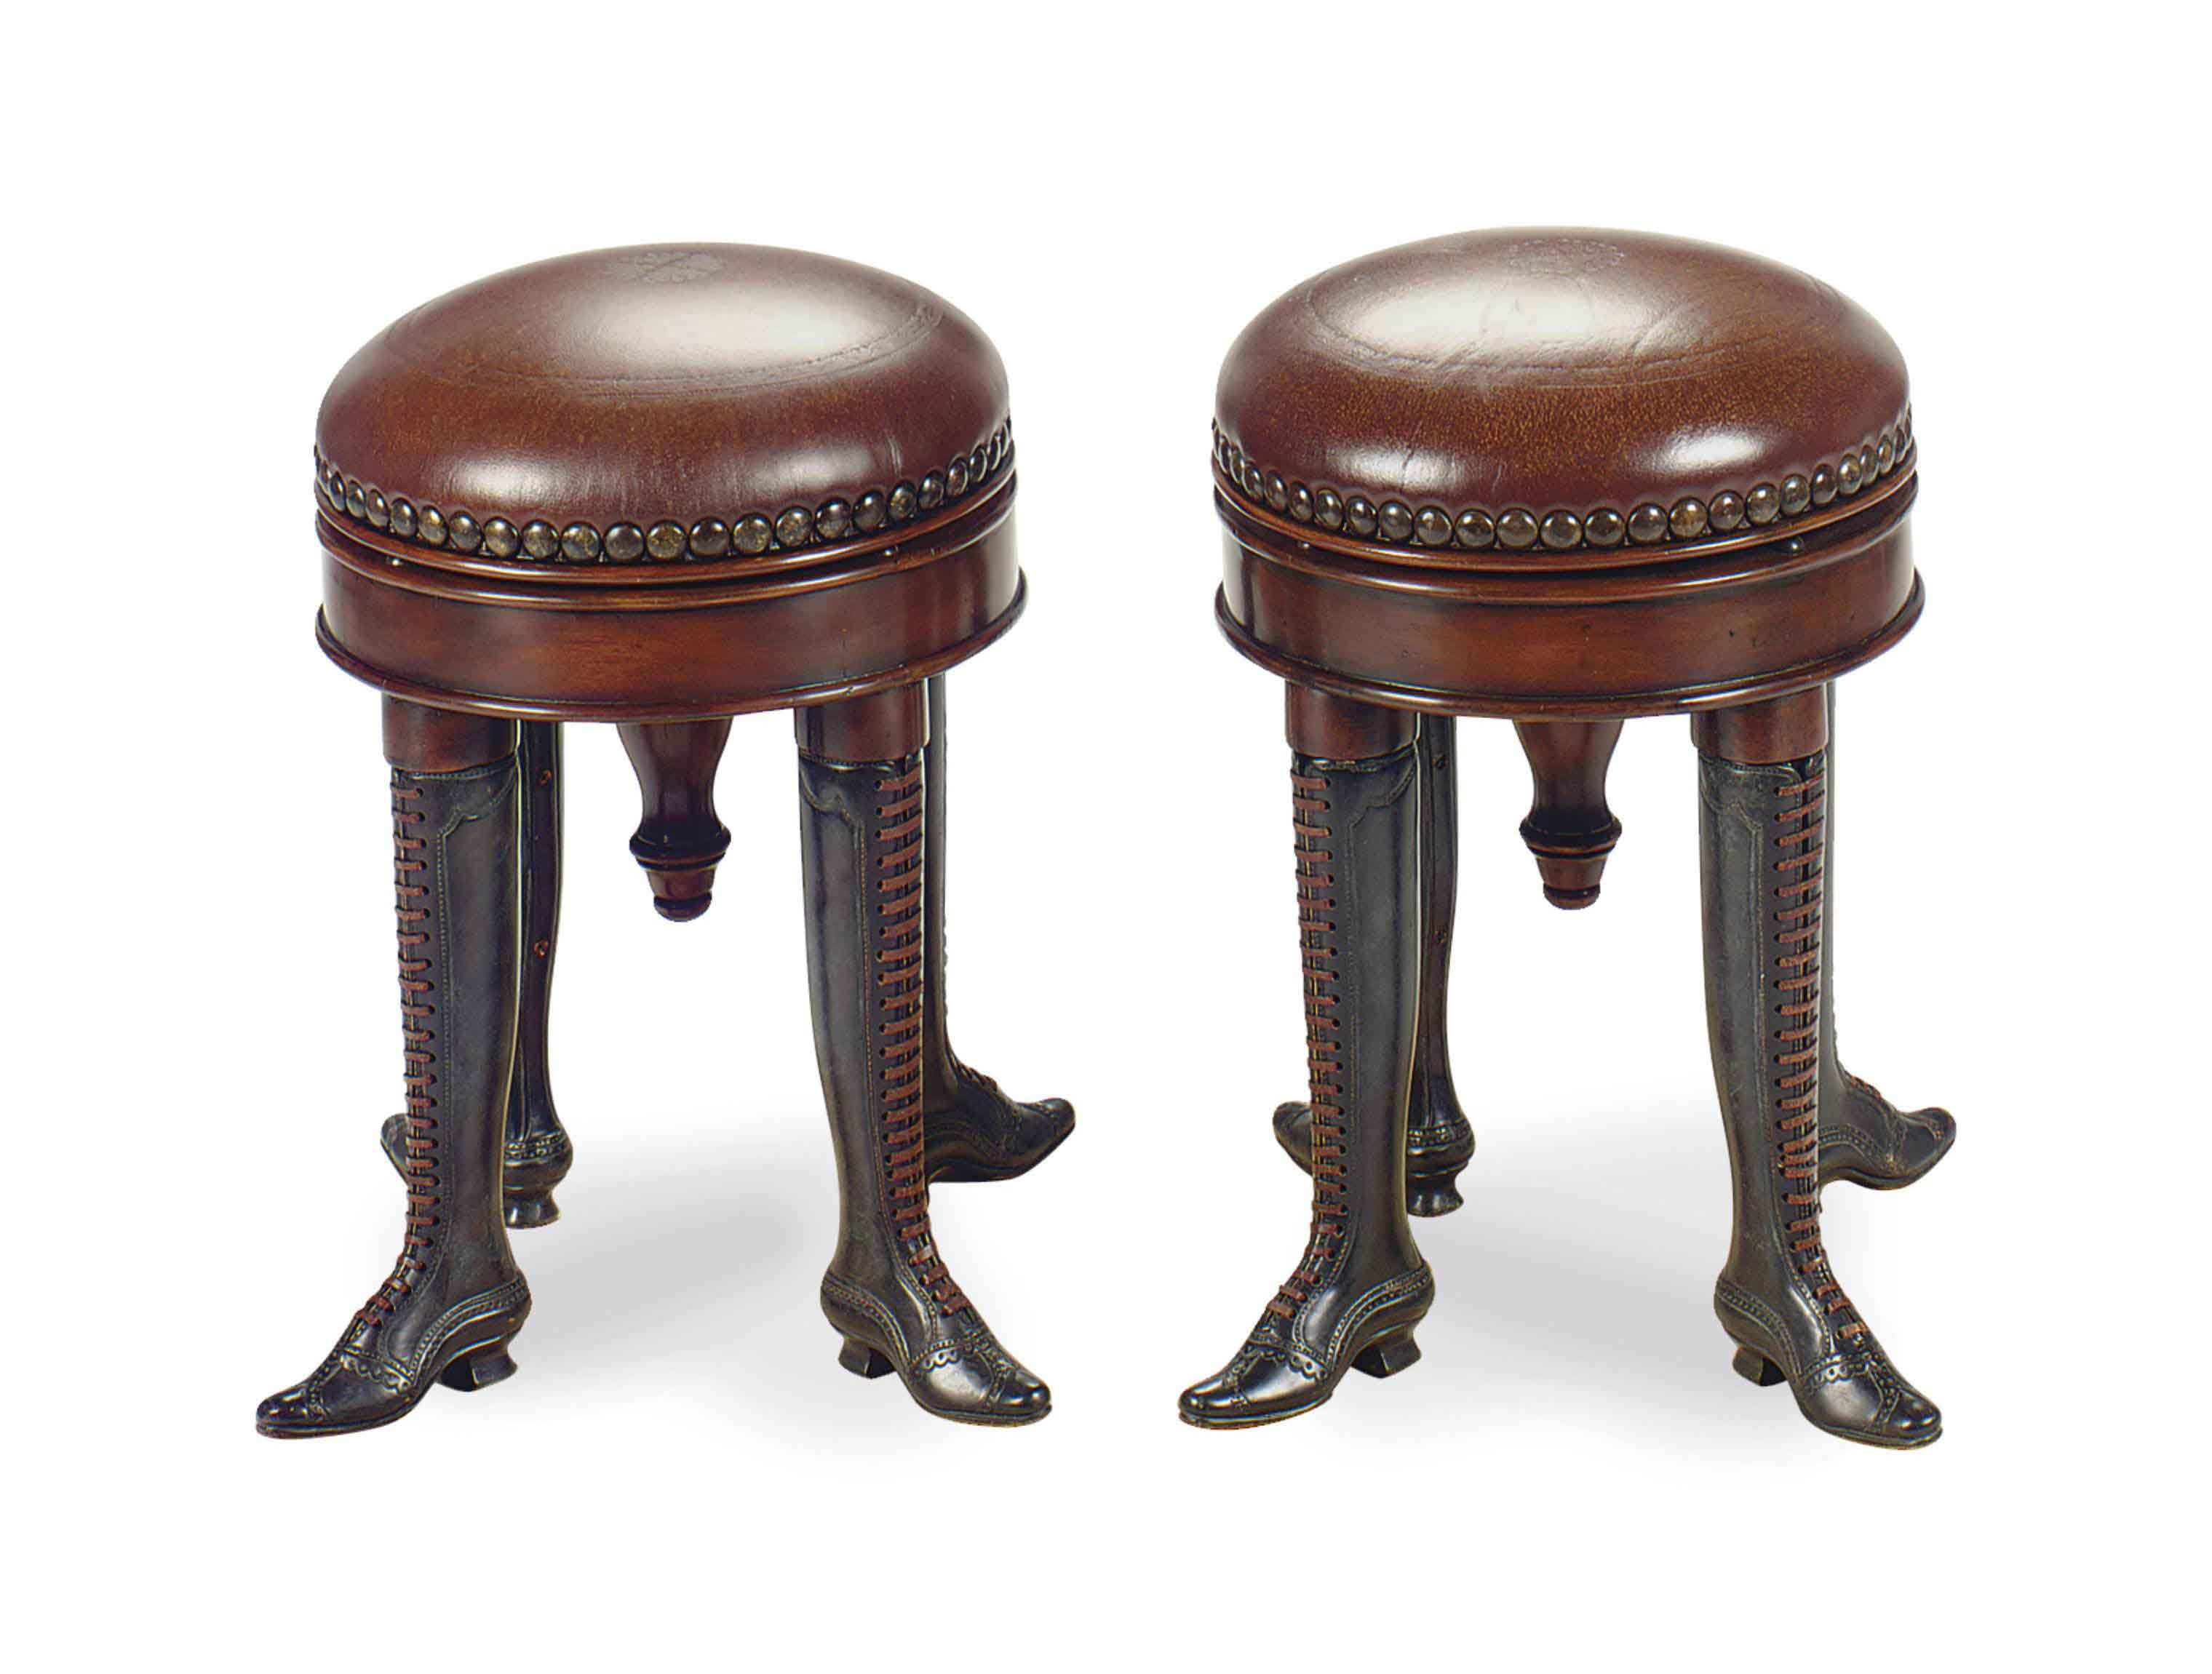 A PAIR OF PATINATED-BRONZE, WALNUT AND LEATHER PIANO STOOLS,